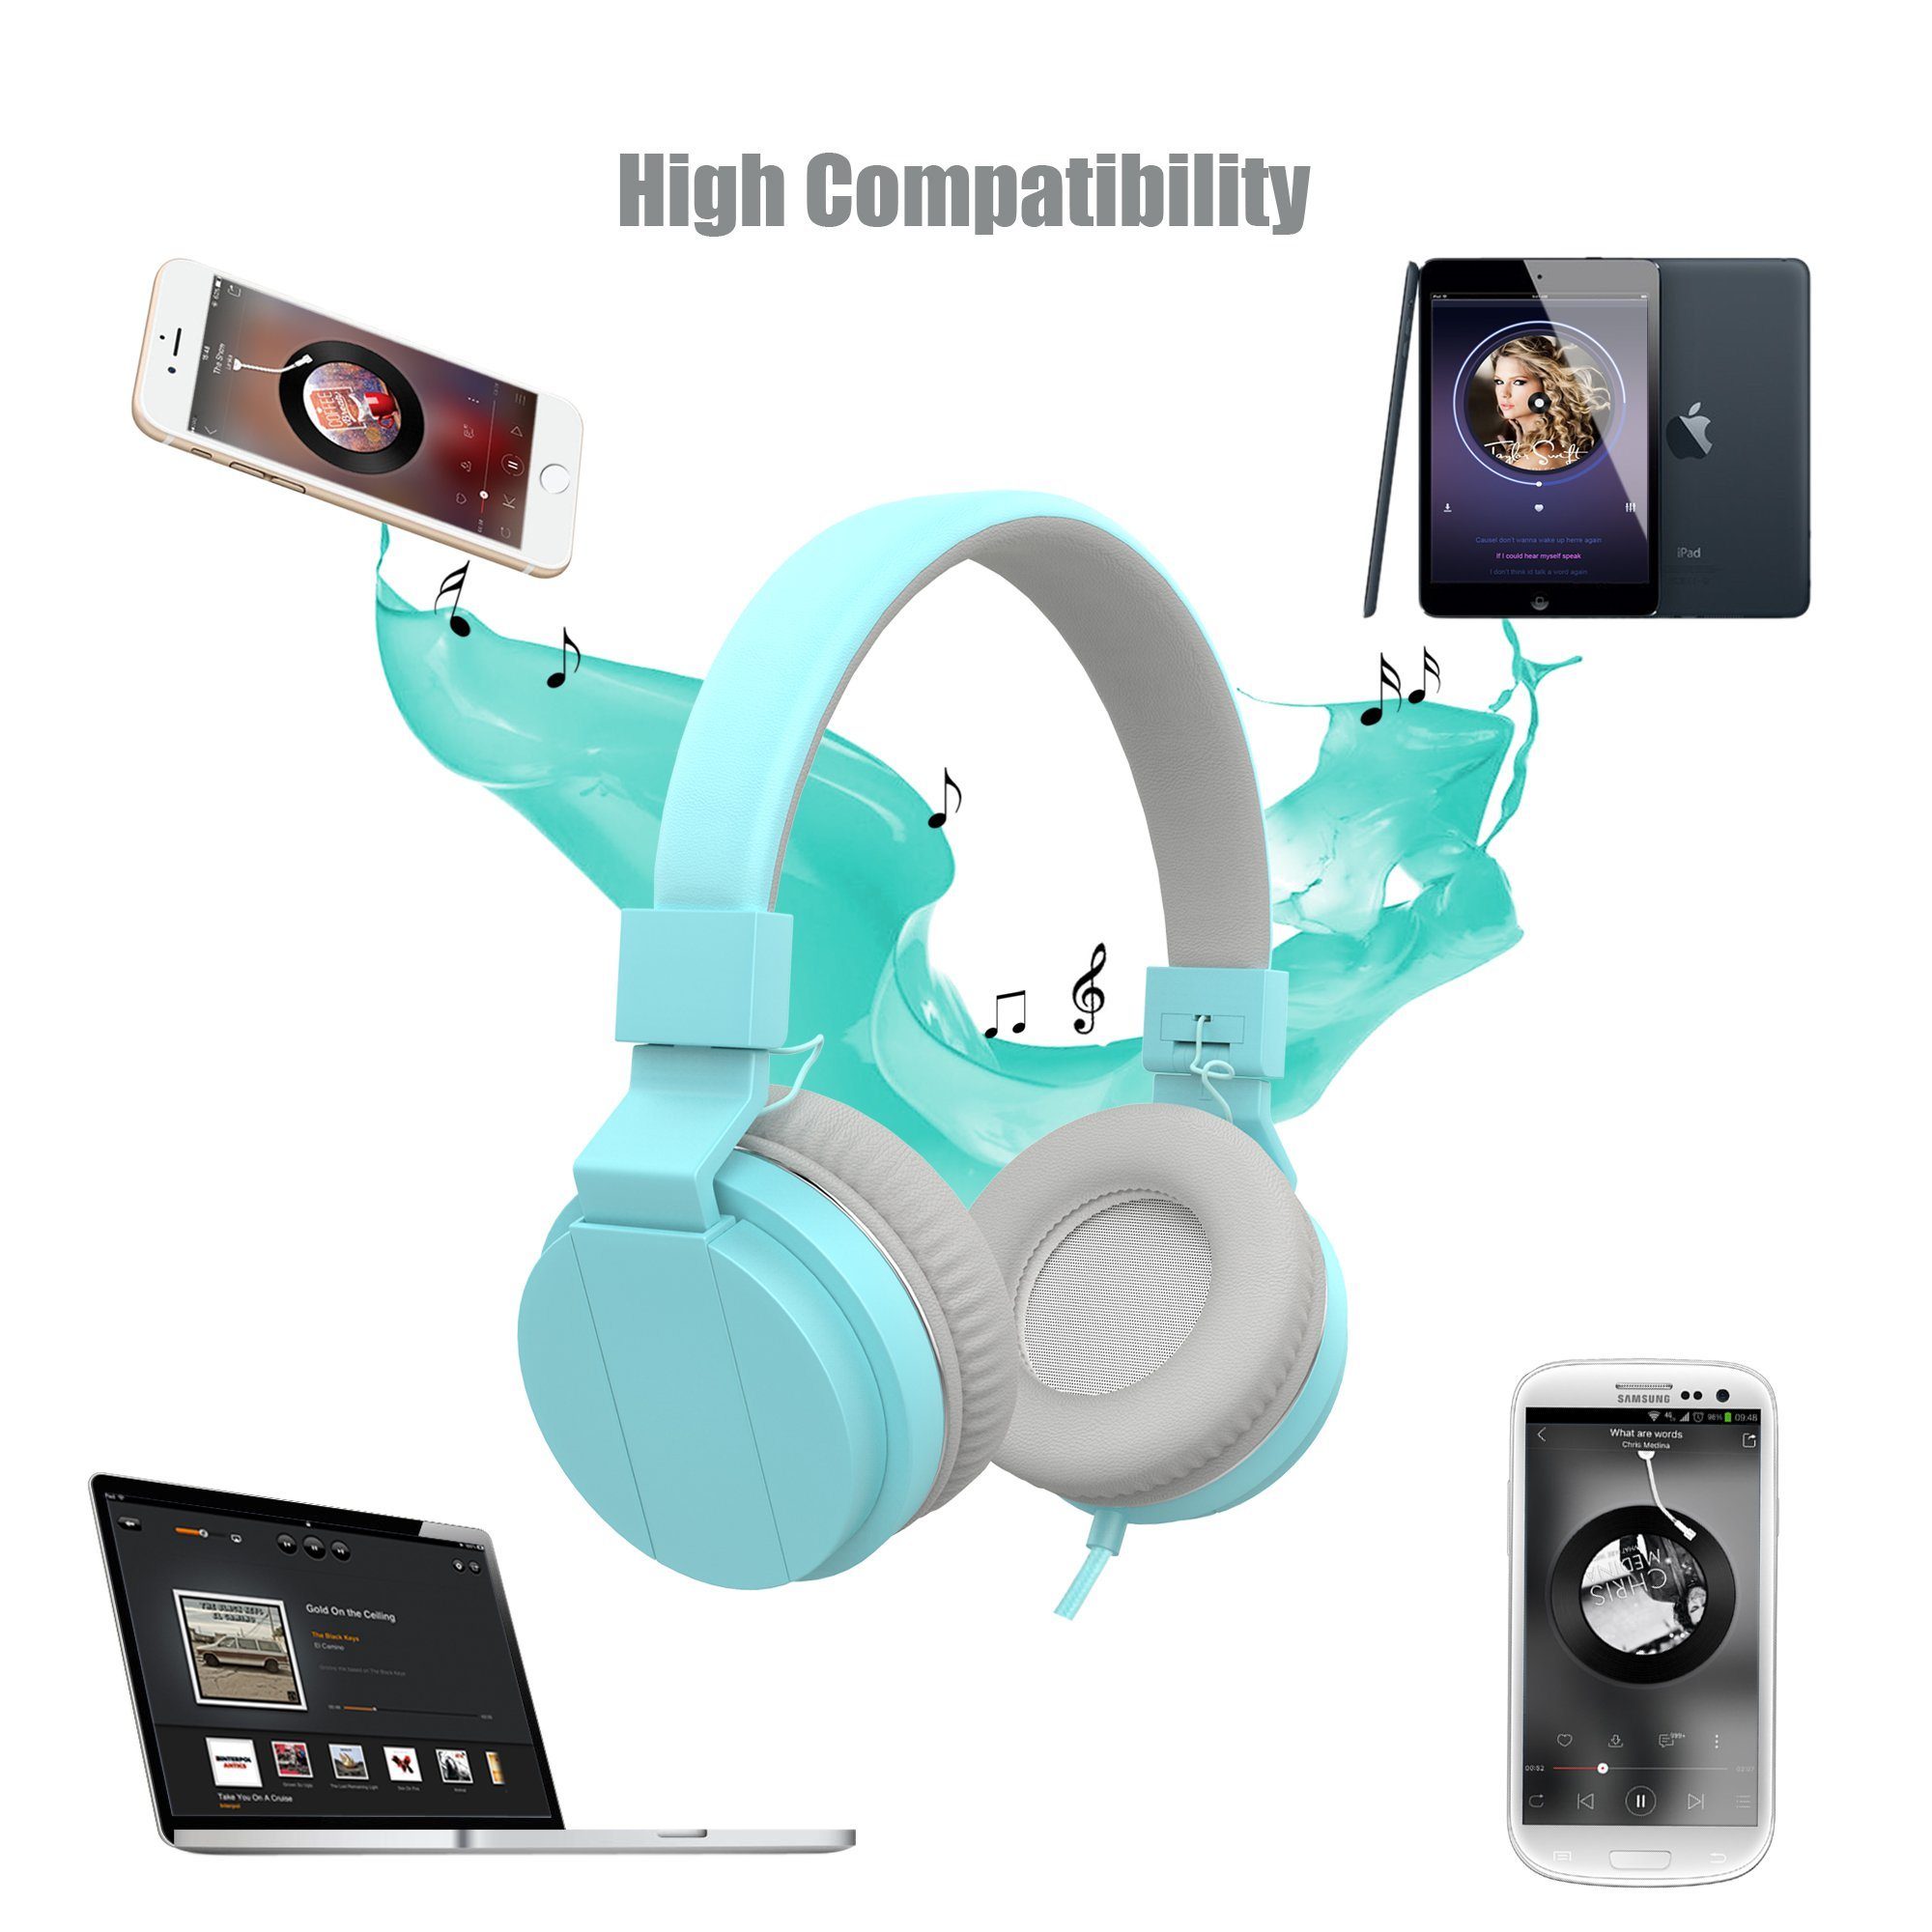 Wired Portable Headsets, Foldable Headphones with Microphone and Volume Control On Ear Headphones for iPhone iPad Android Smartphones Laptop Tablet for Kids or Adults by Vomach (Image #6)